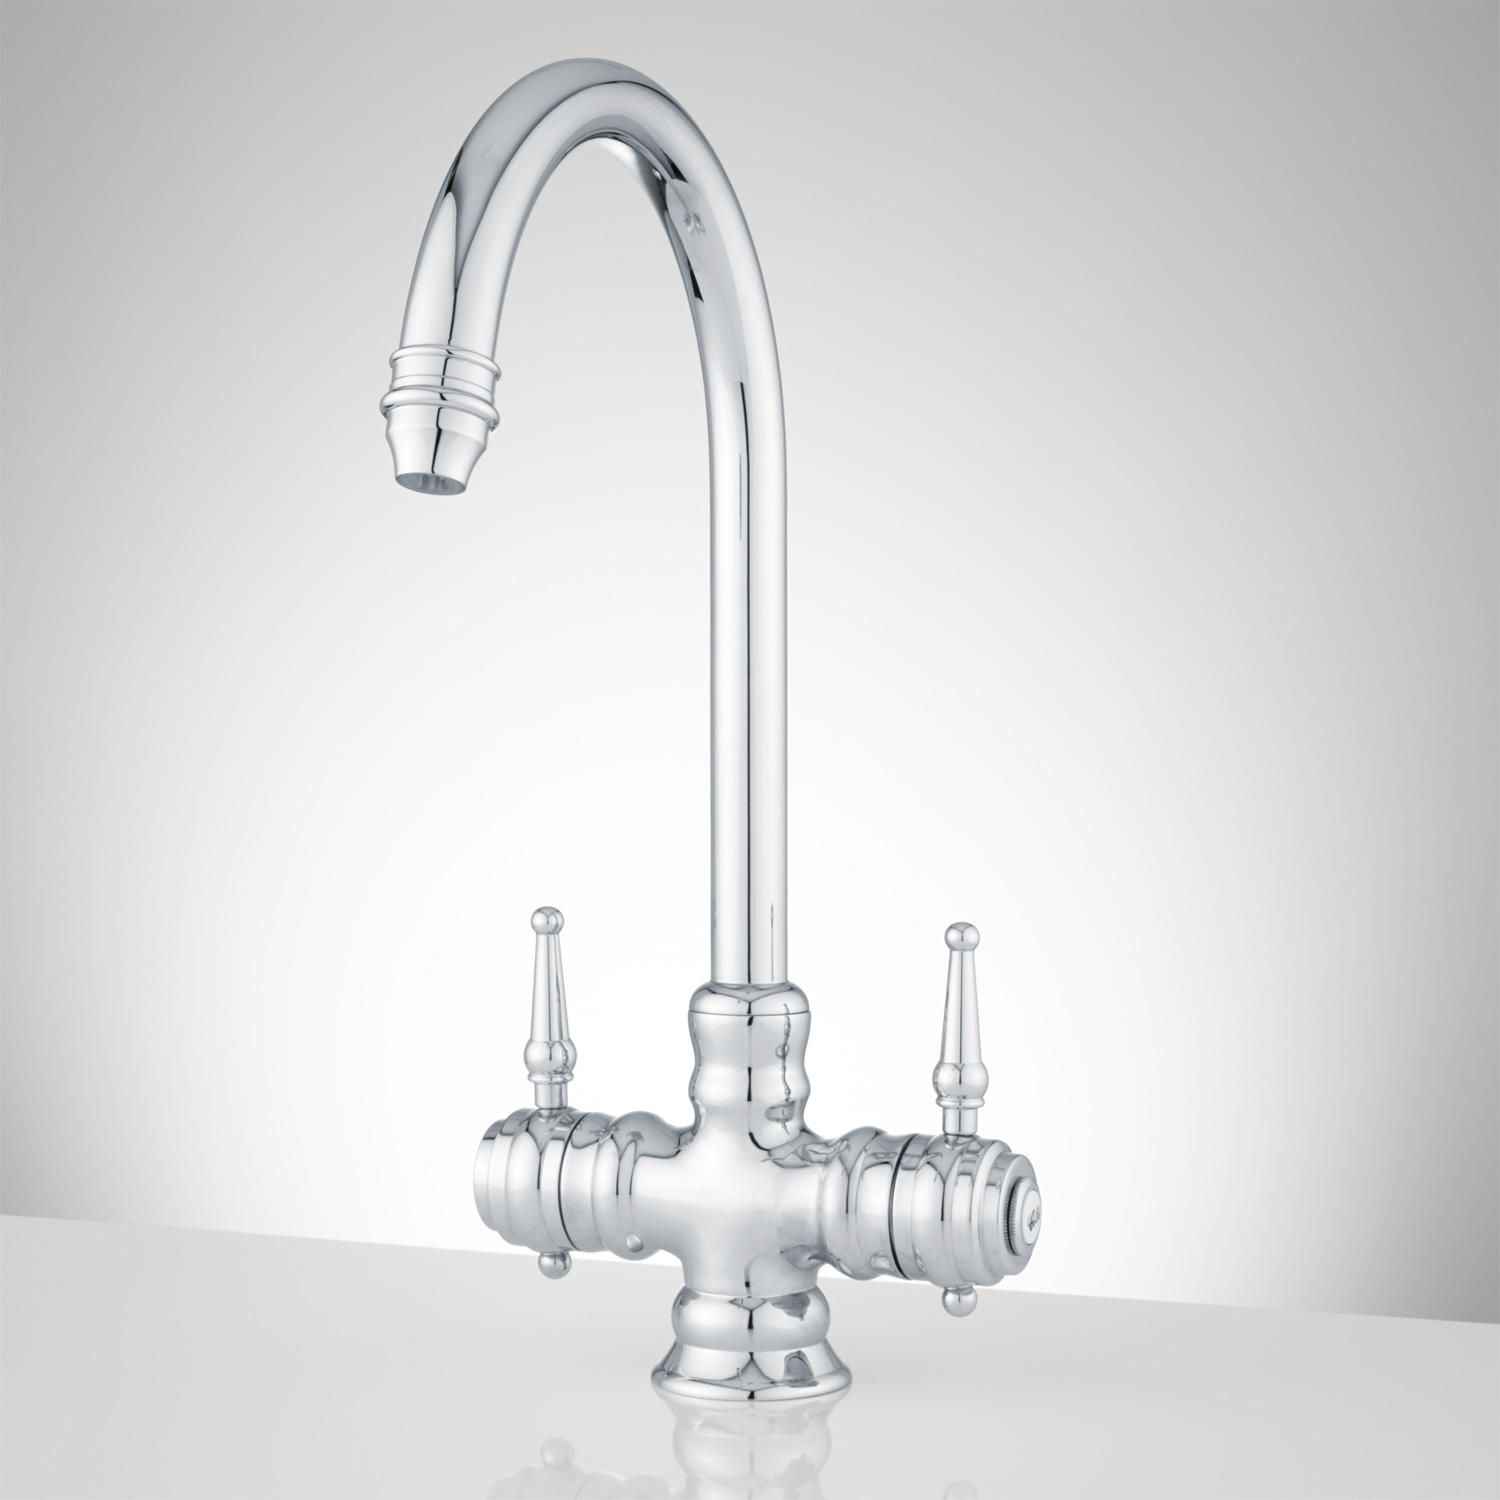 Delia Single-Hole Bathroom Faucet with Pop-Up Drain | Products